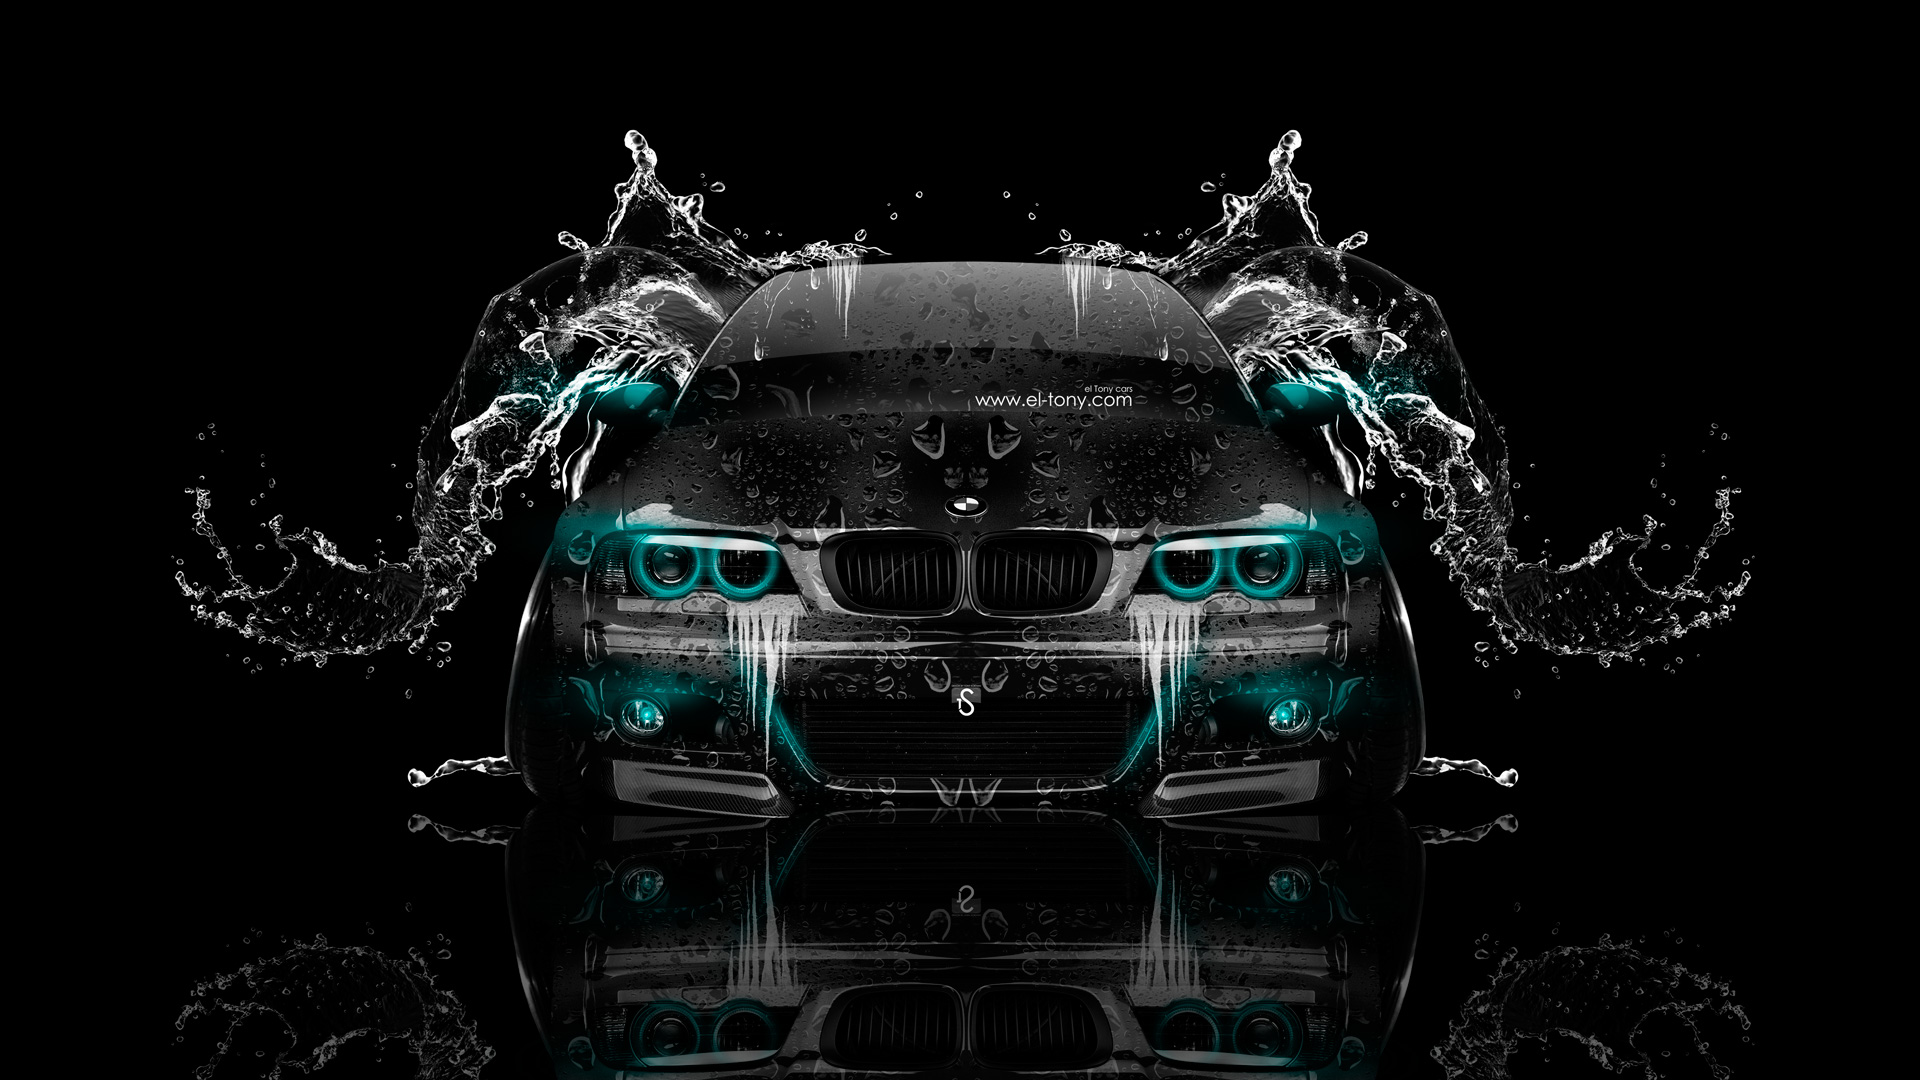 BMW M3 E46 Front Water Car 2014 el Tony